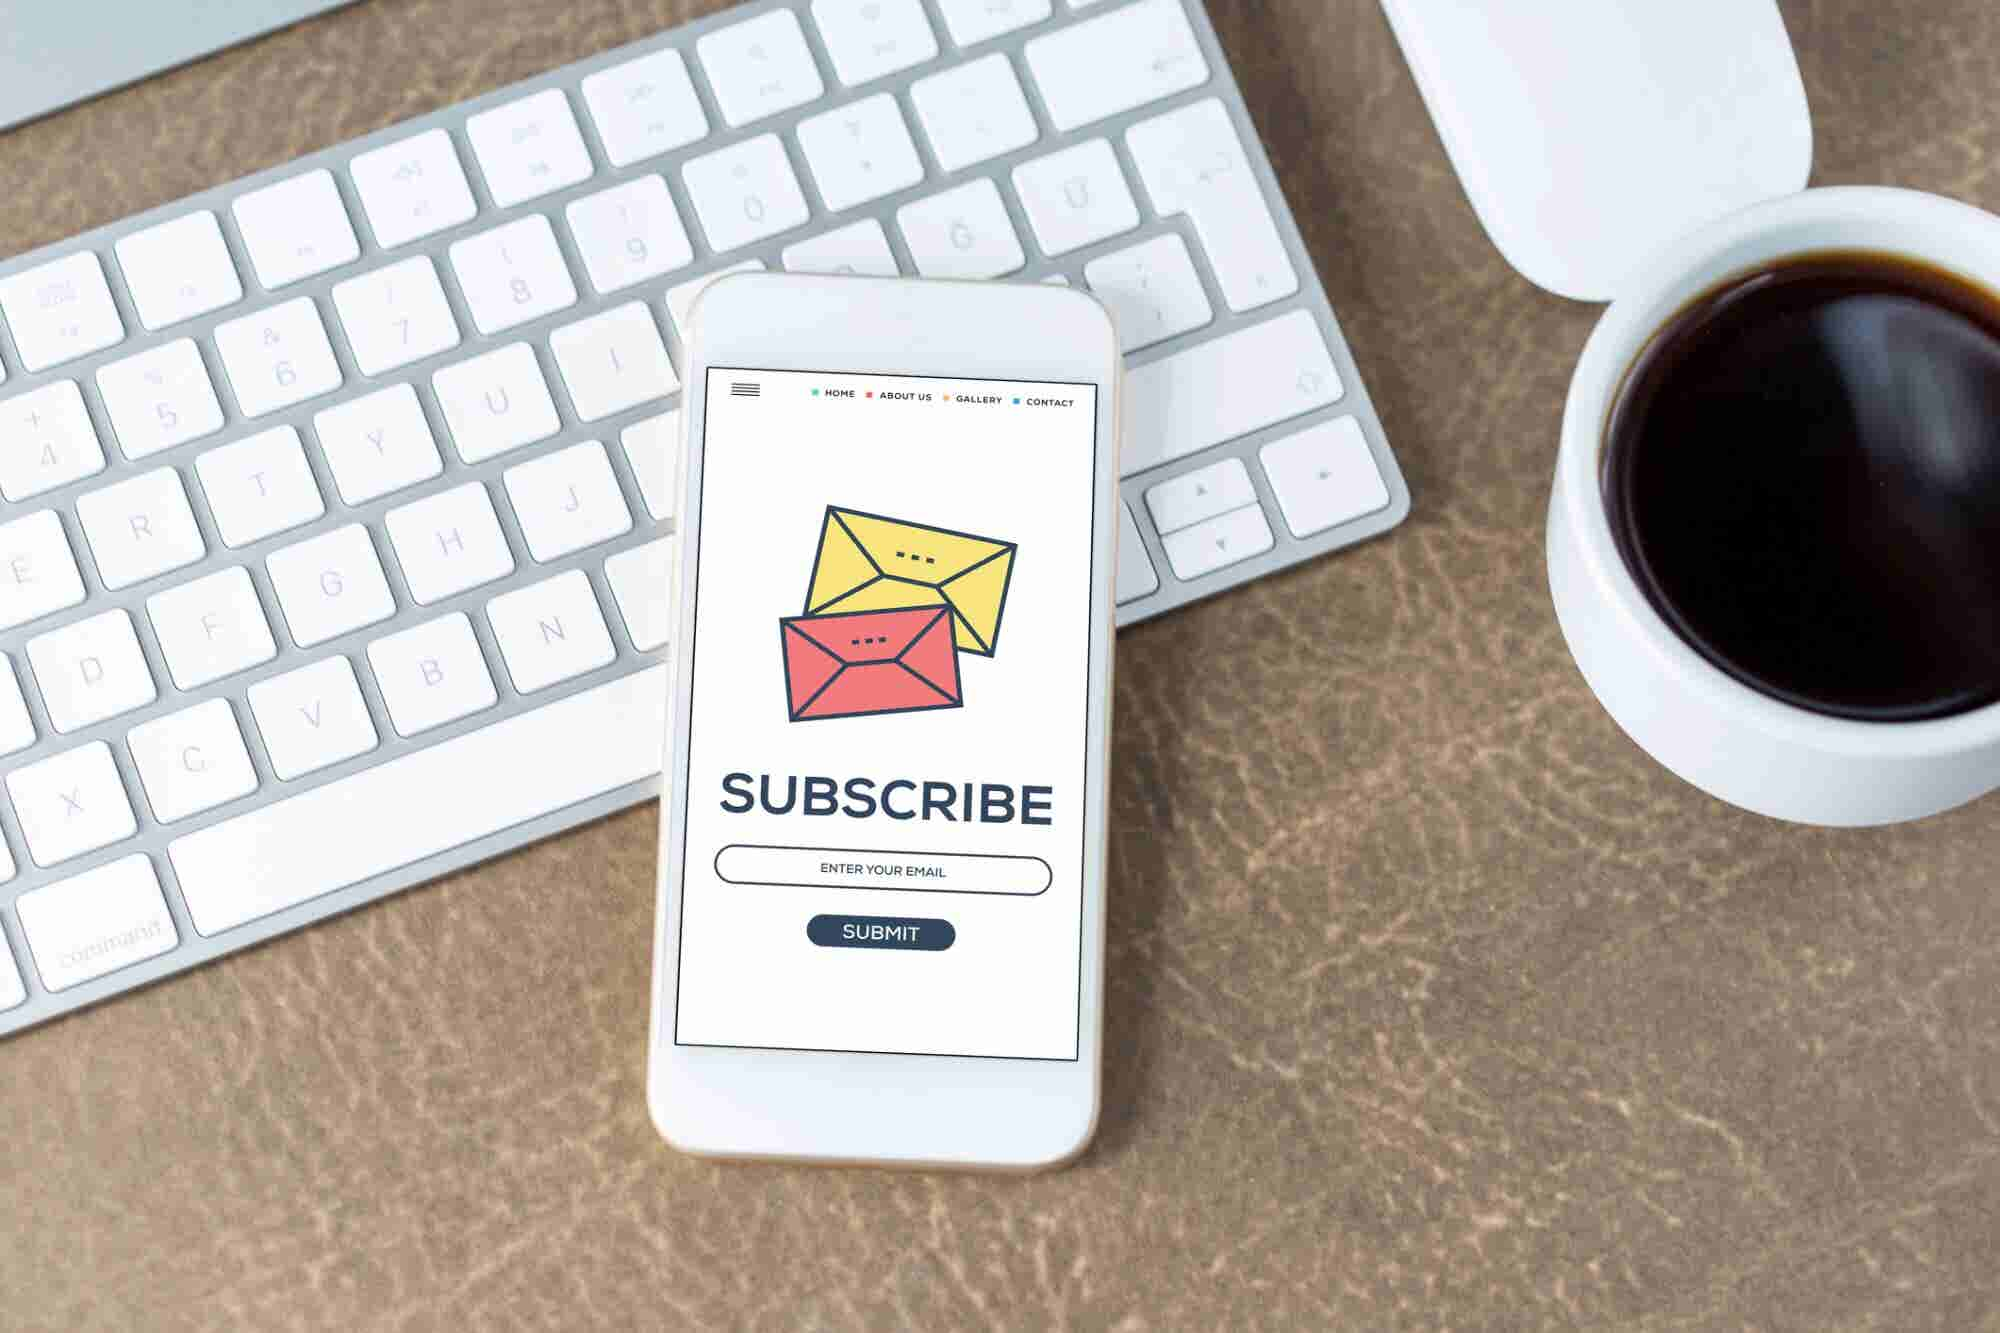 Subscription Models Can Inspire Innovation in Stagnant Industries